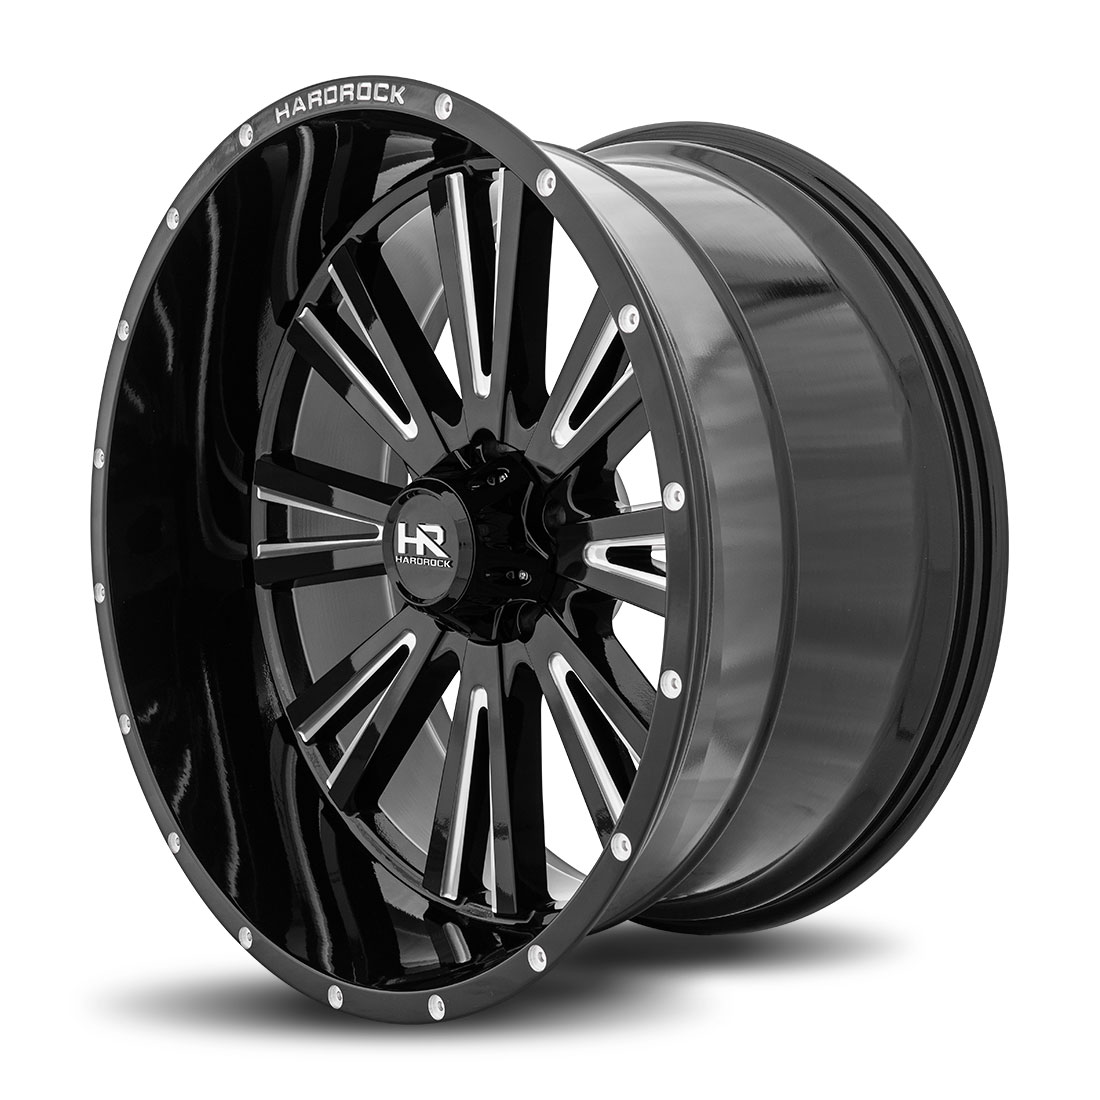 Hardrock Offroad Wheels H503 Spine-Xposed - Gloss Black Milled - 24x12